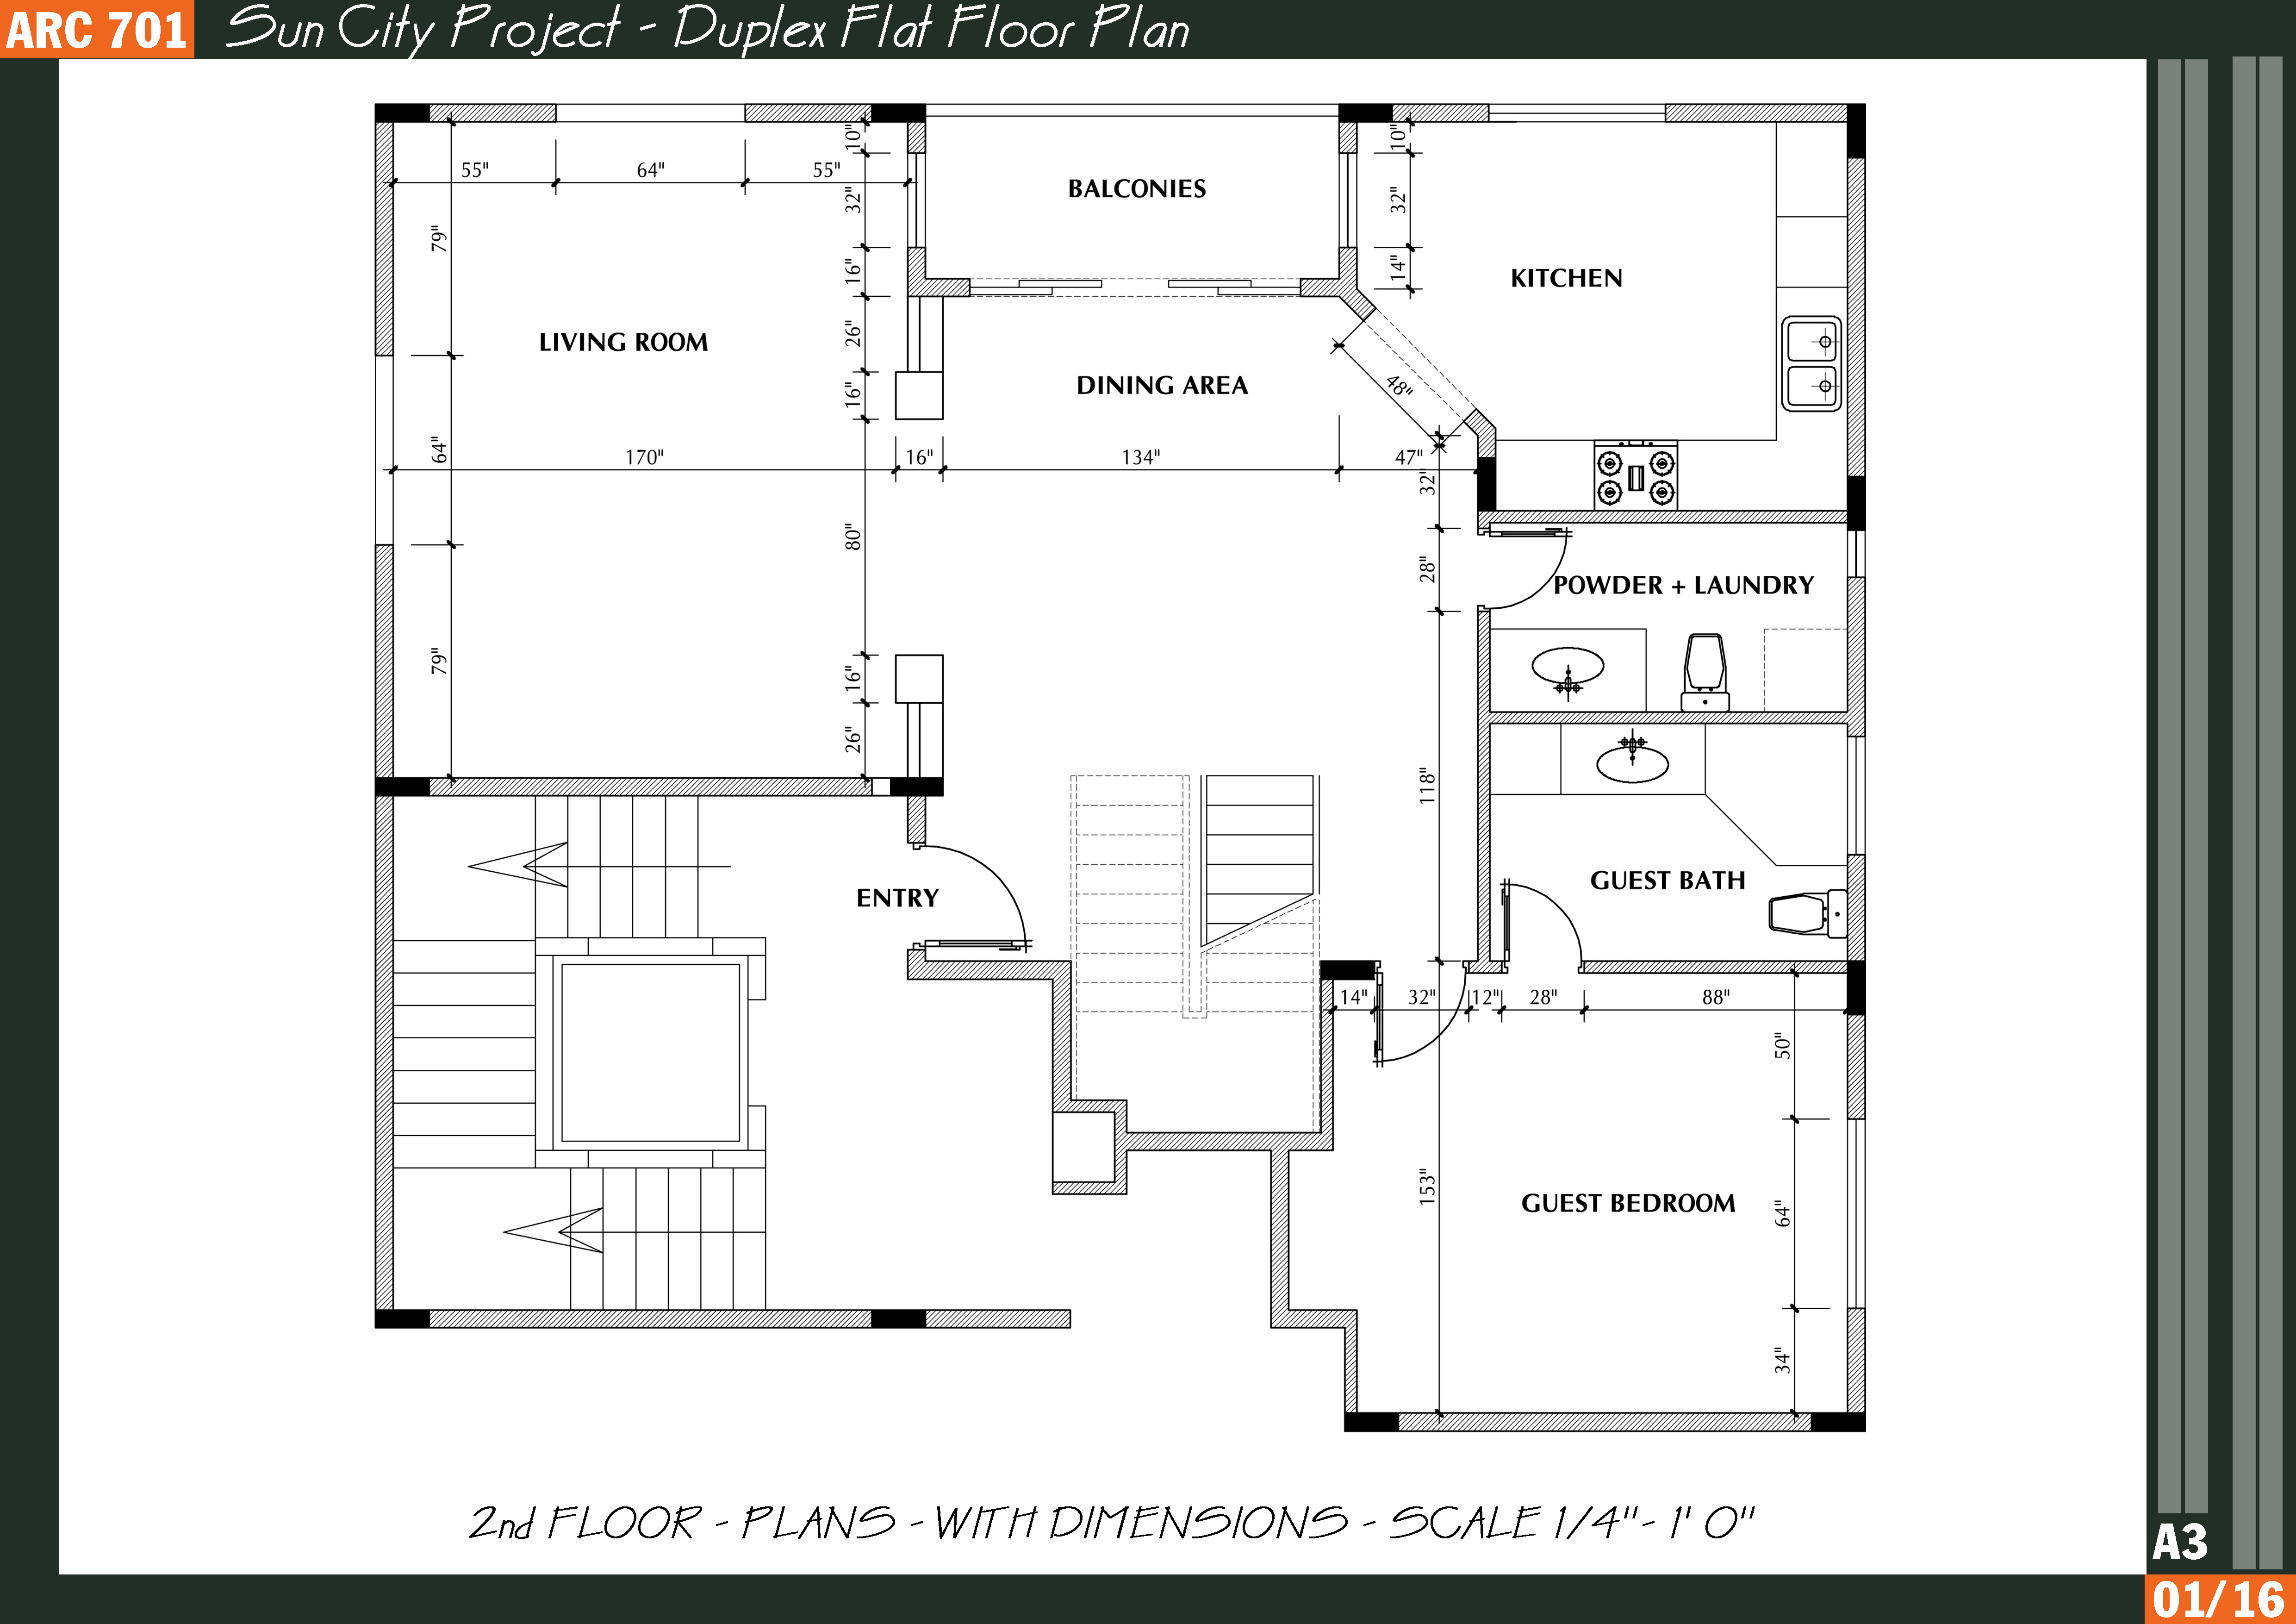 Viewdesignerproject projectresidential Residential building plans